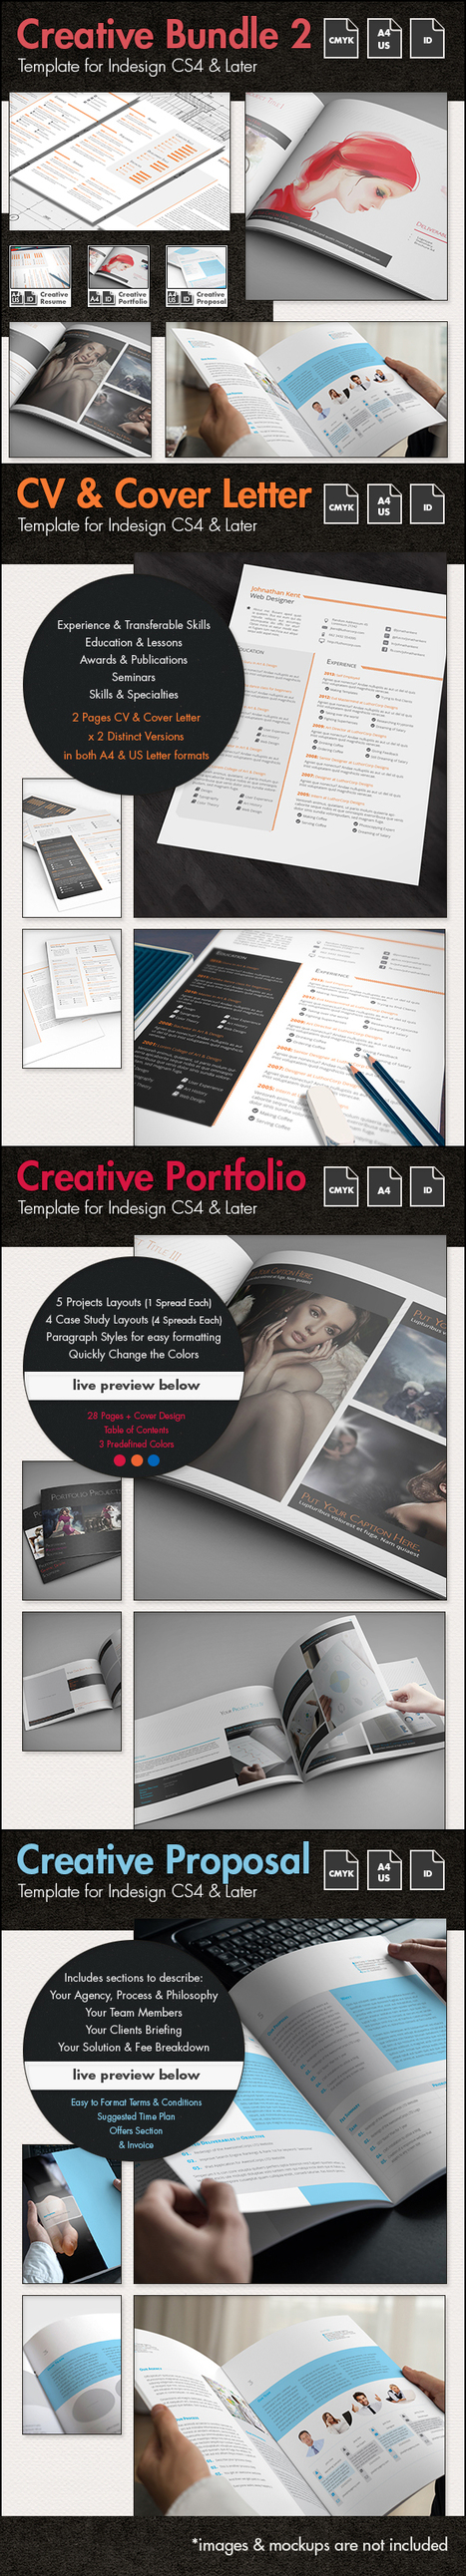 Creative Bundle r2 - US Letter & A4 | About Art & Creativity | Scoop.it